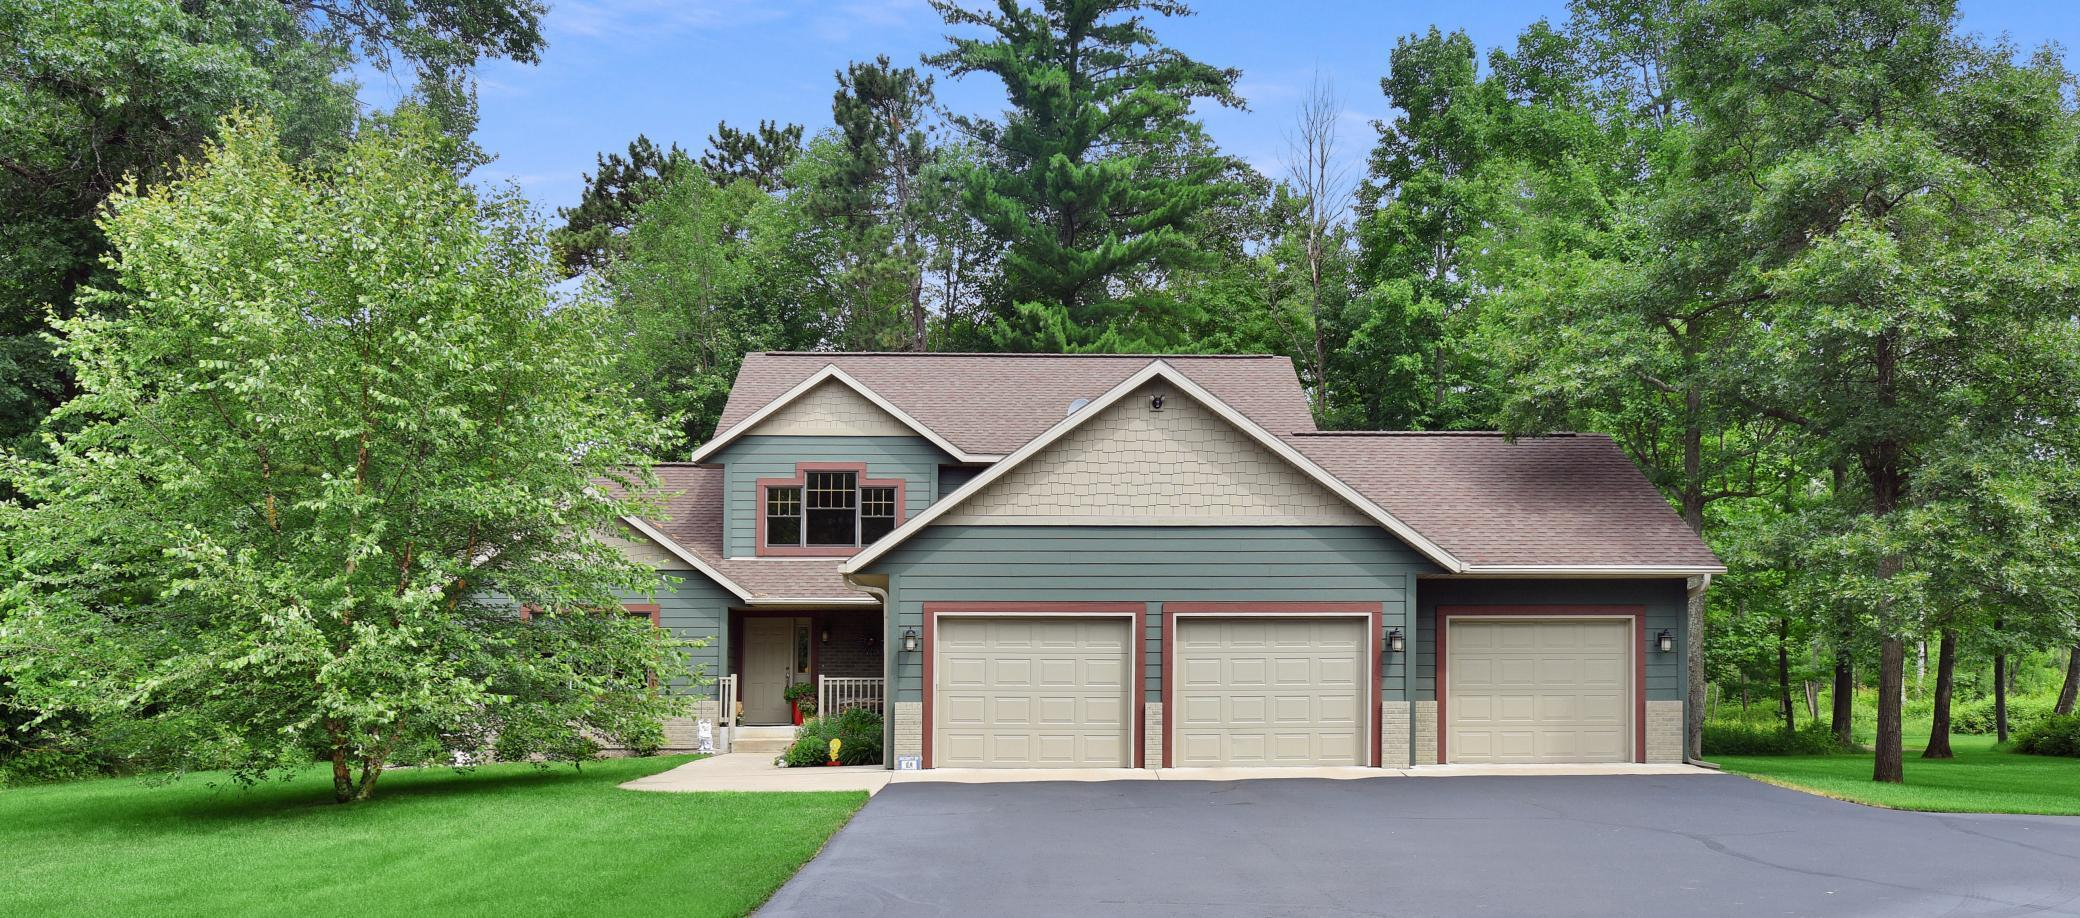 2178 Quill SW Property Photo - East Gull Lake, MN real estate listing